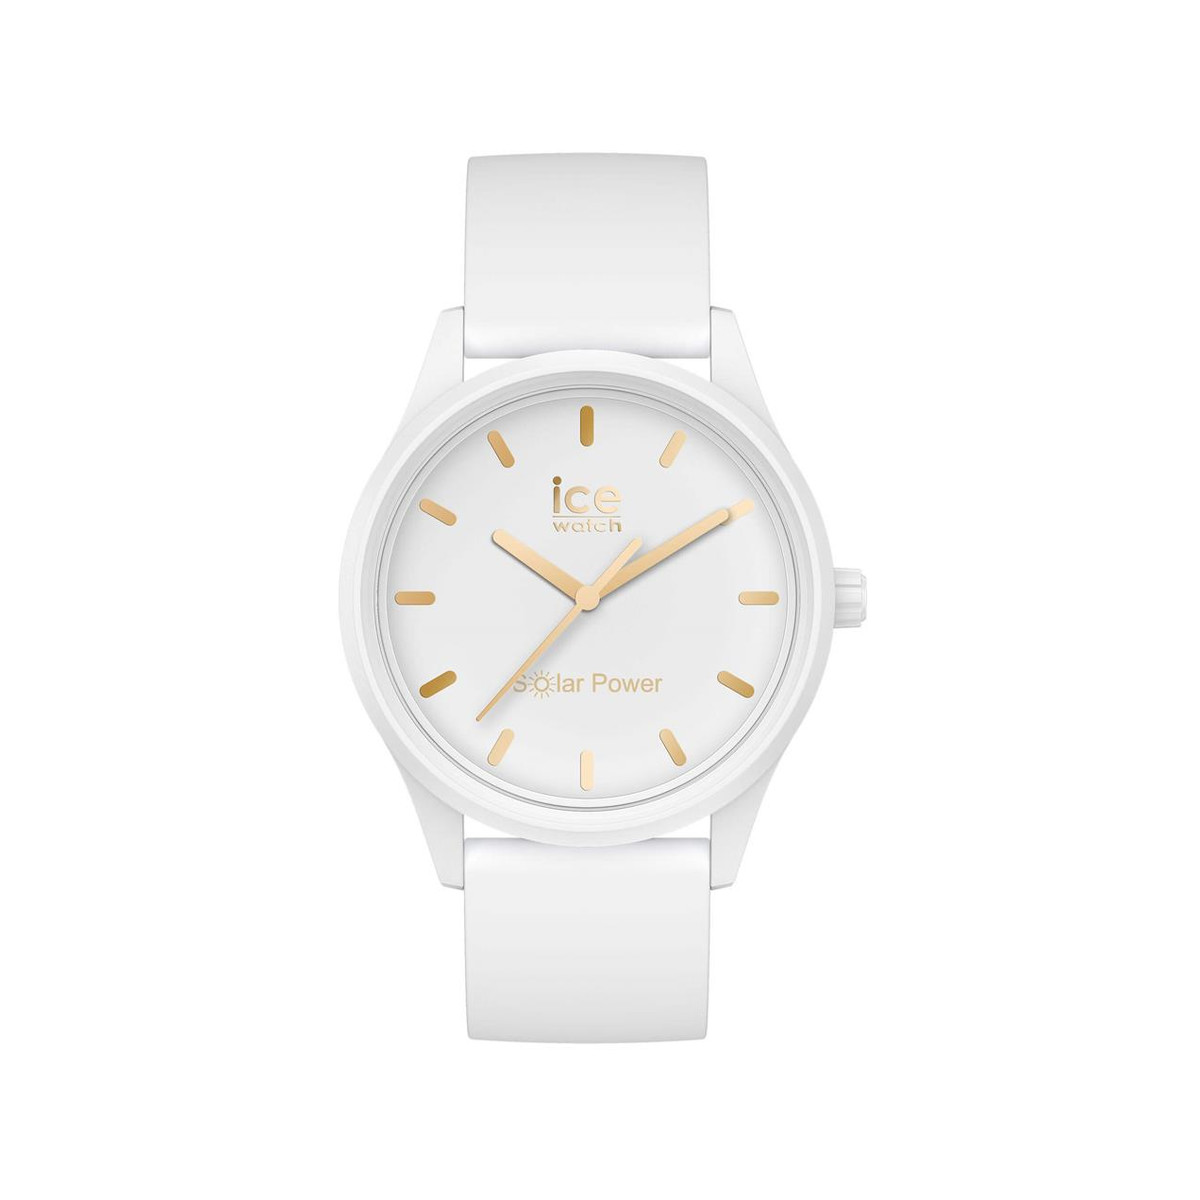 Montre Ice Watch femme taille small plastique blanc